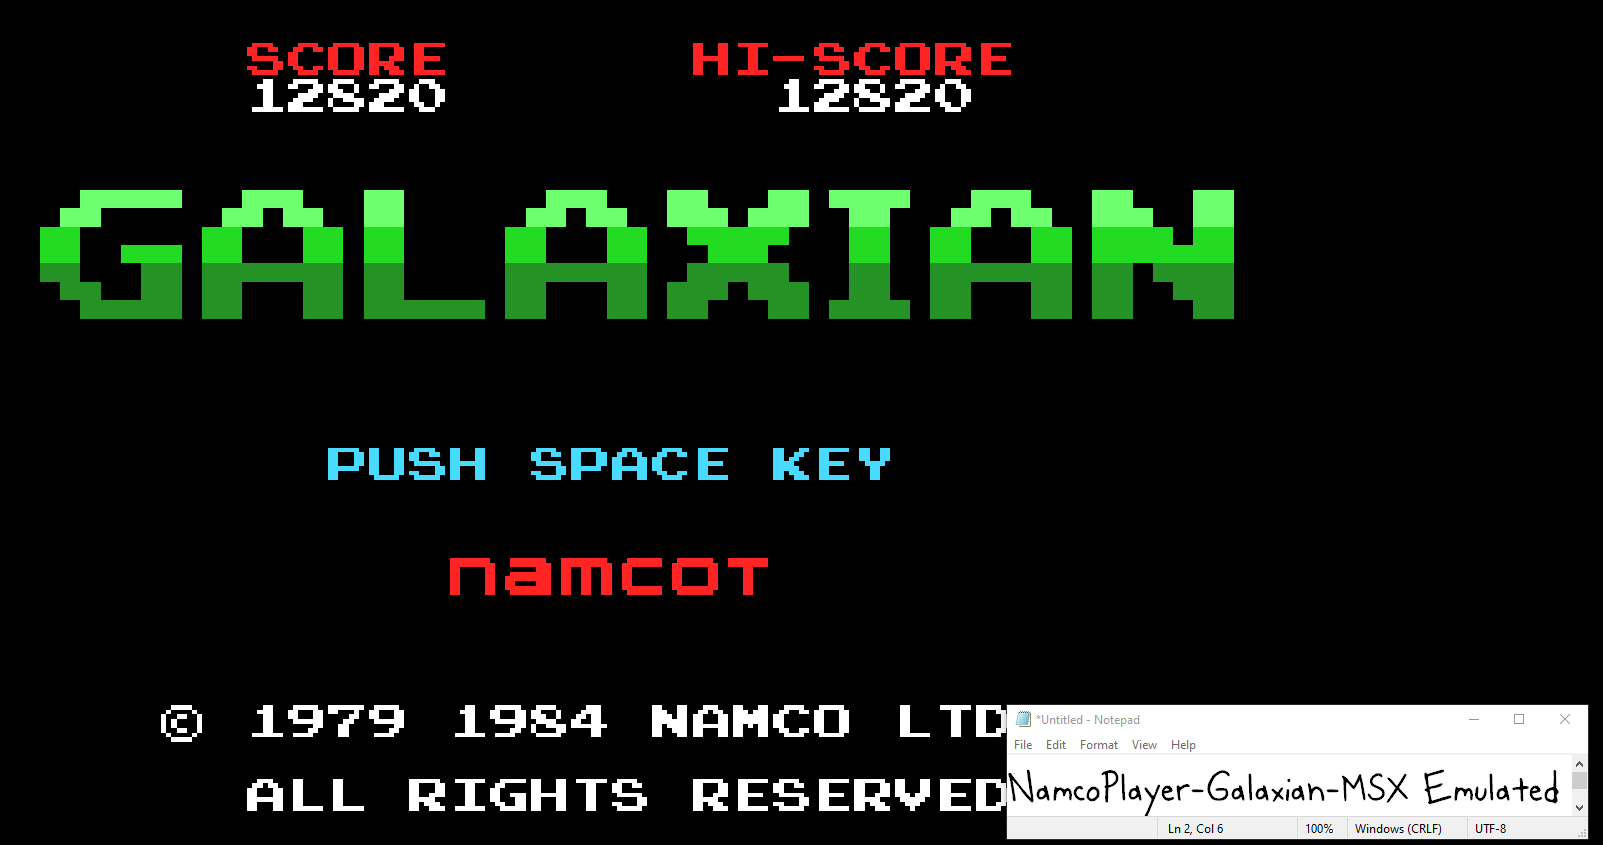 Galaxian 12,820 points